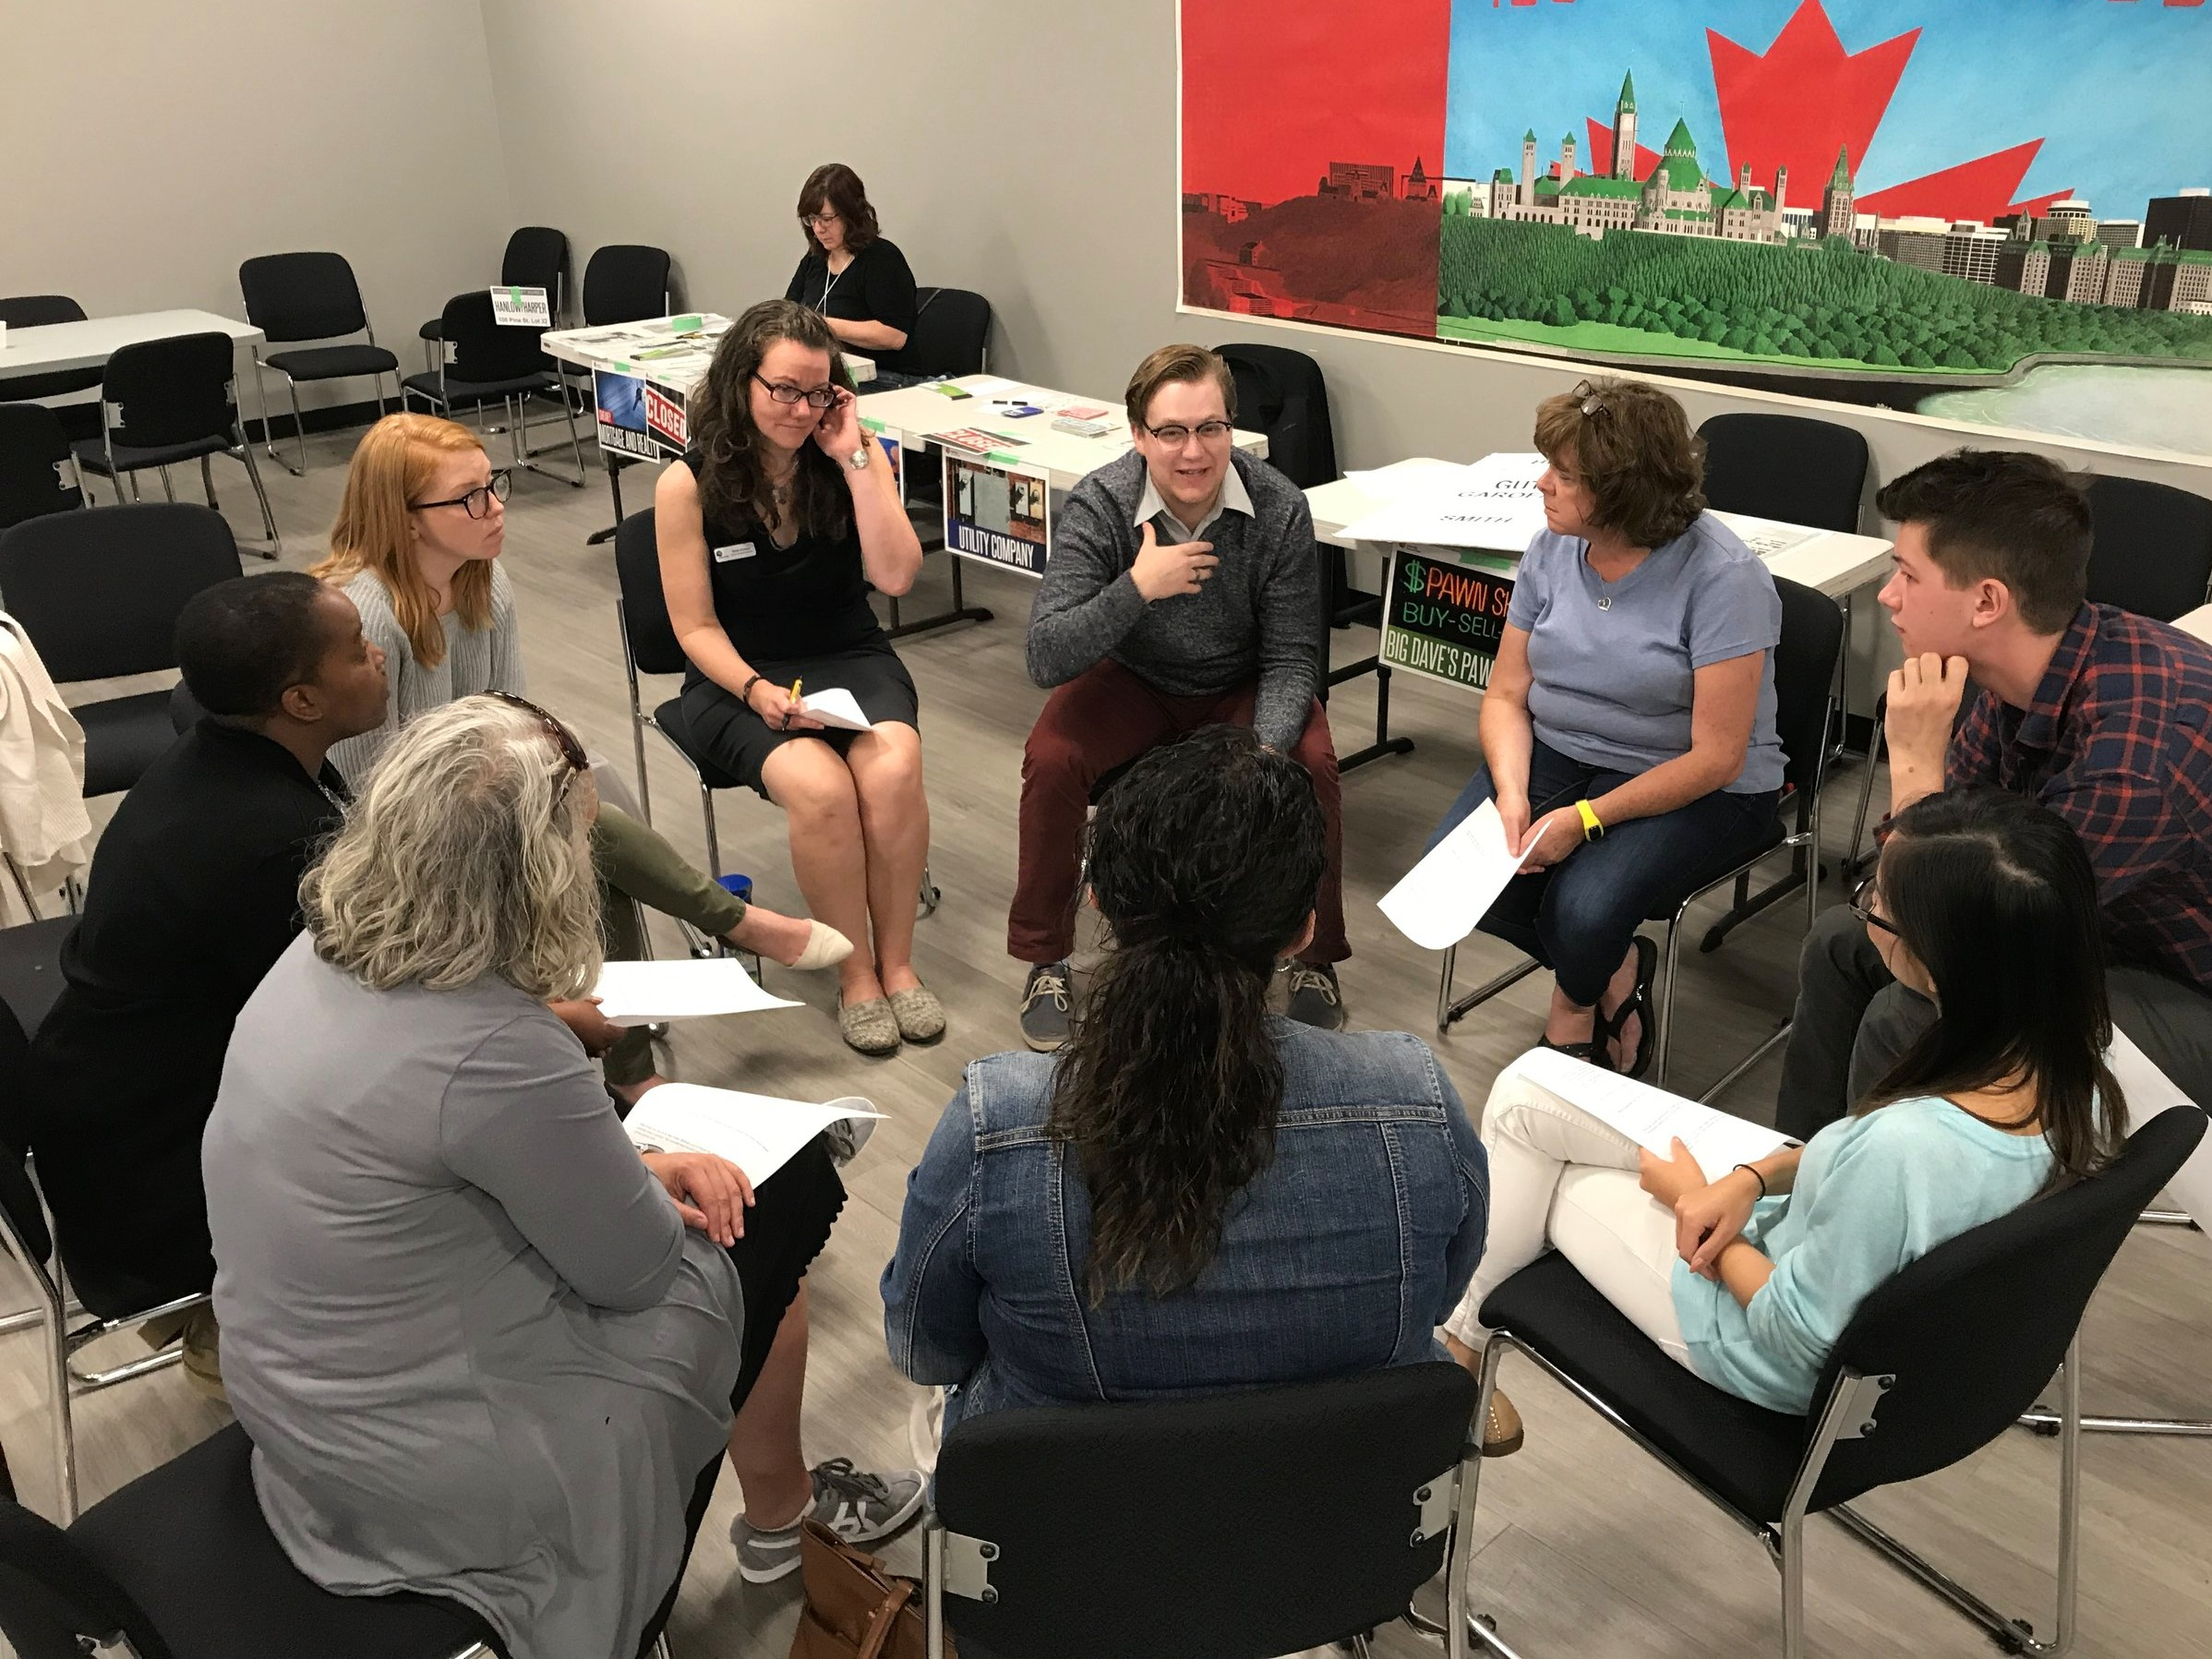 Participants discuss their experiences within the poverty simulation